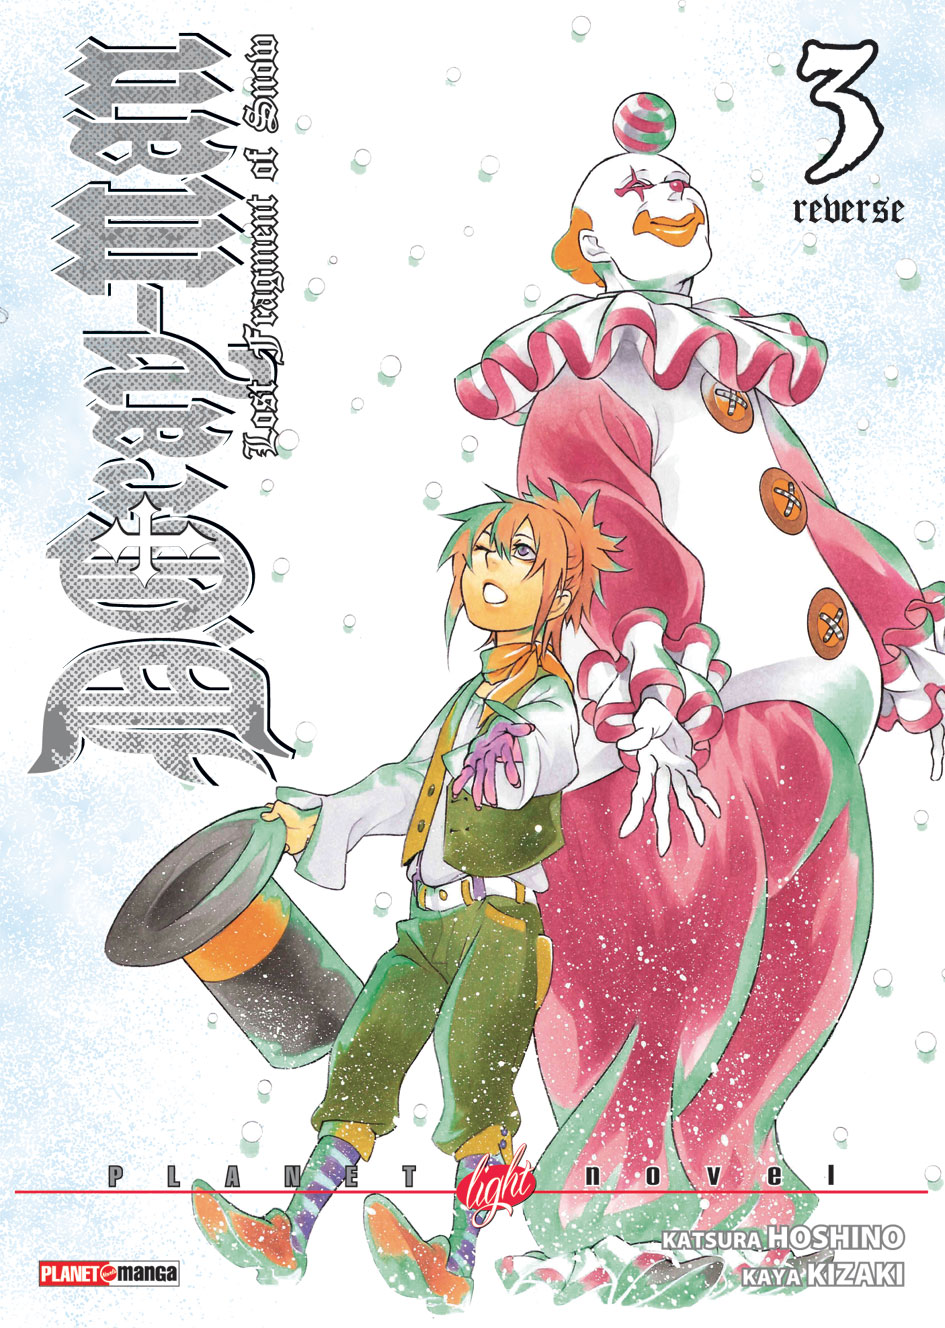 D.Gray-Man Reverse vol. 3